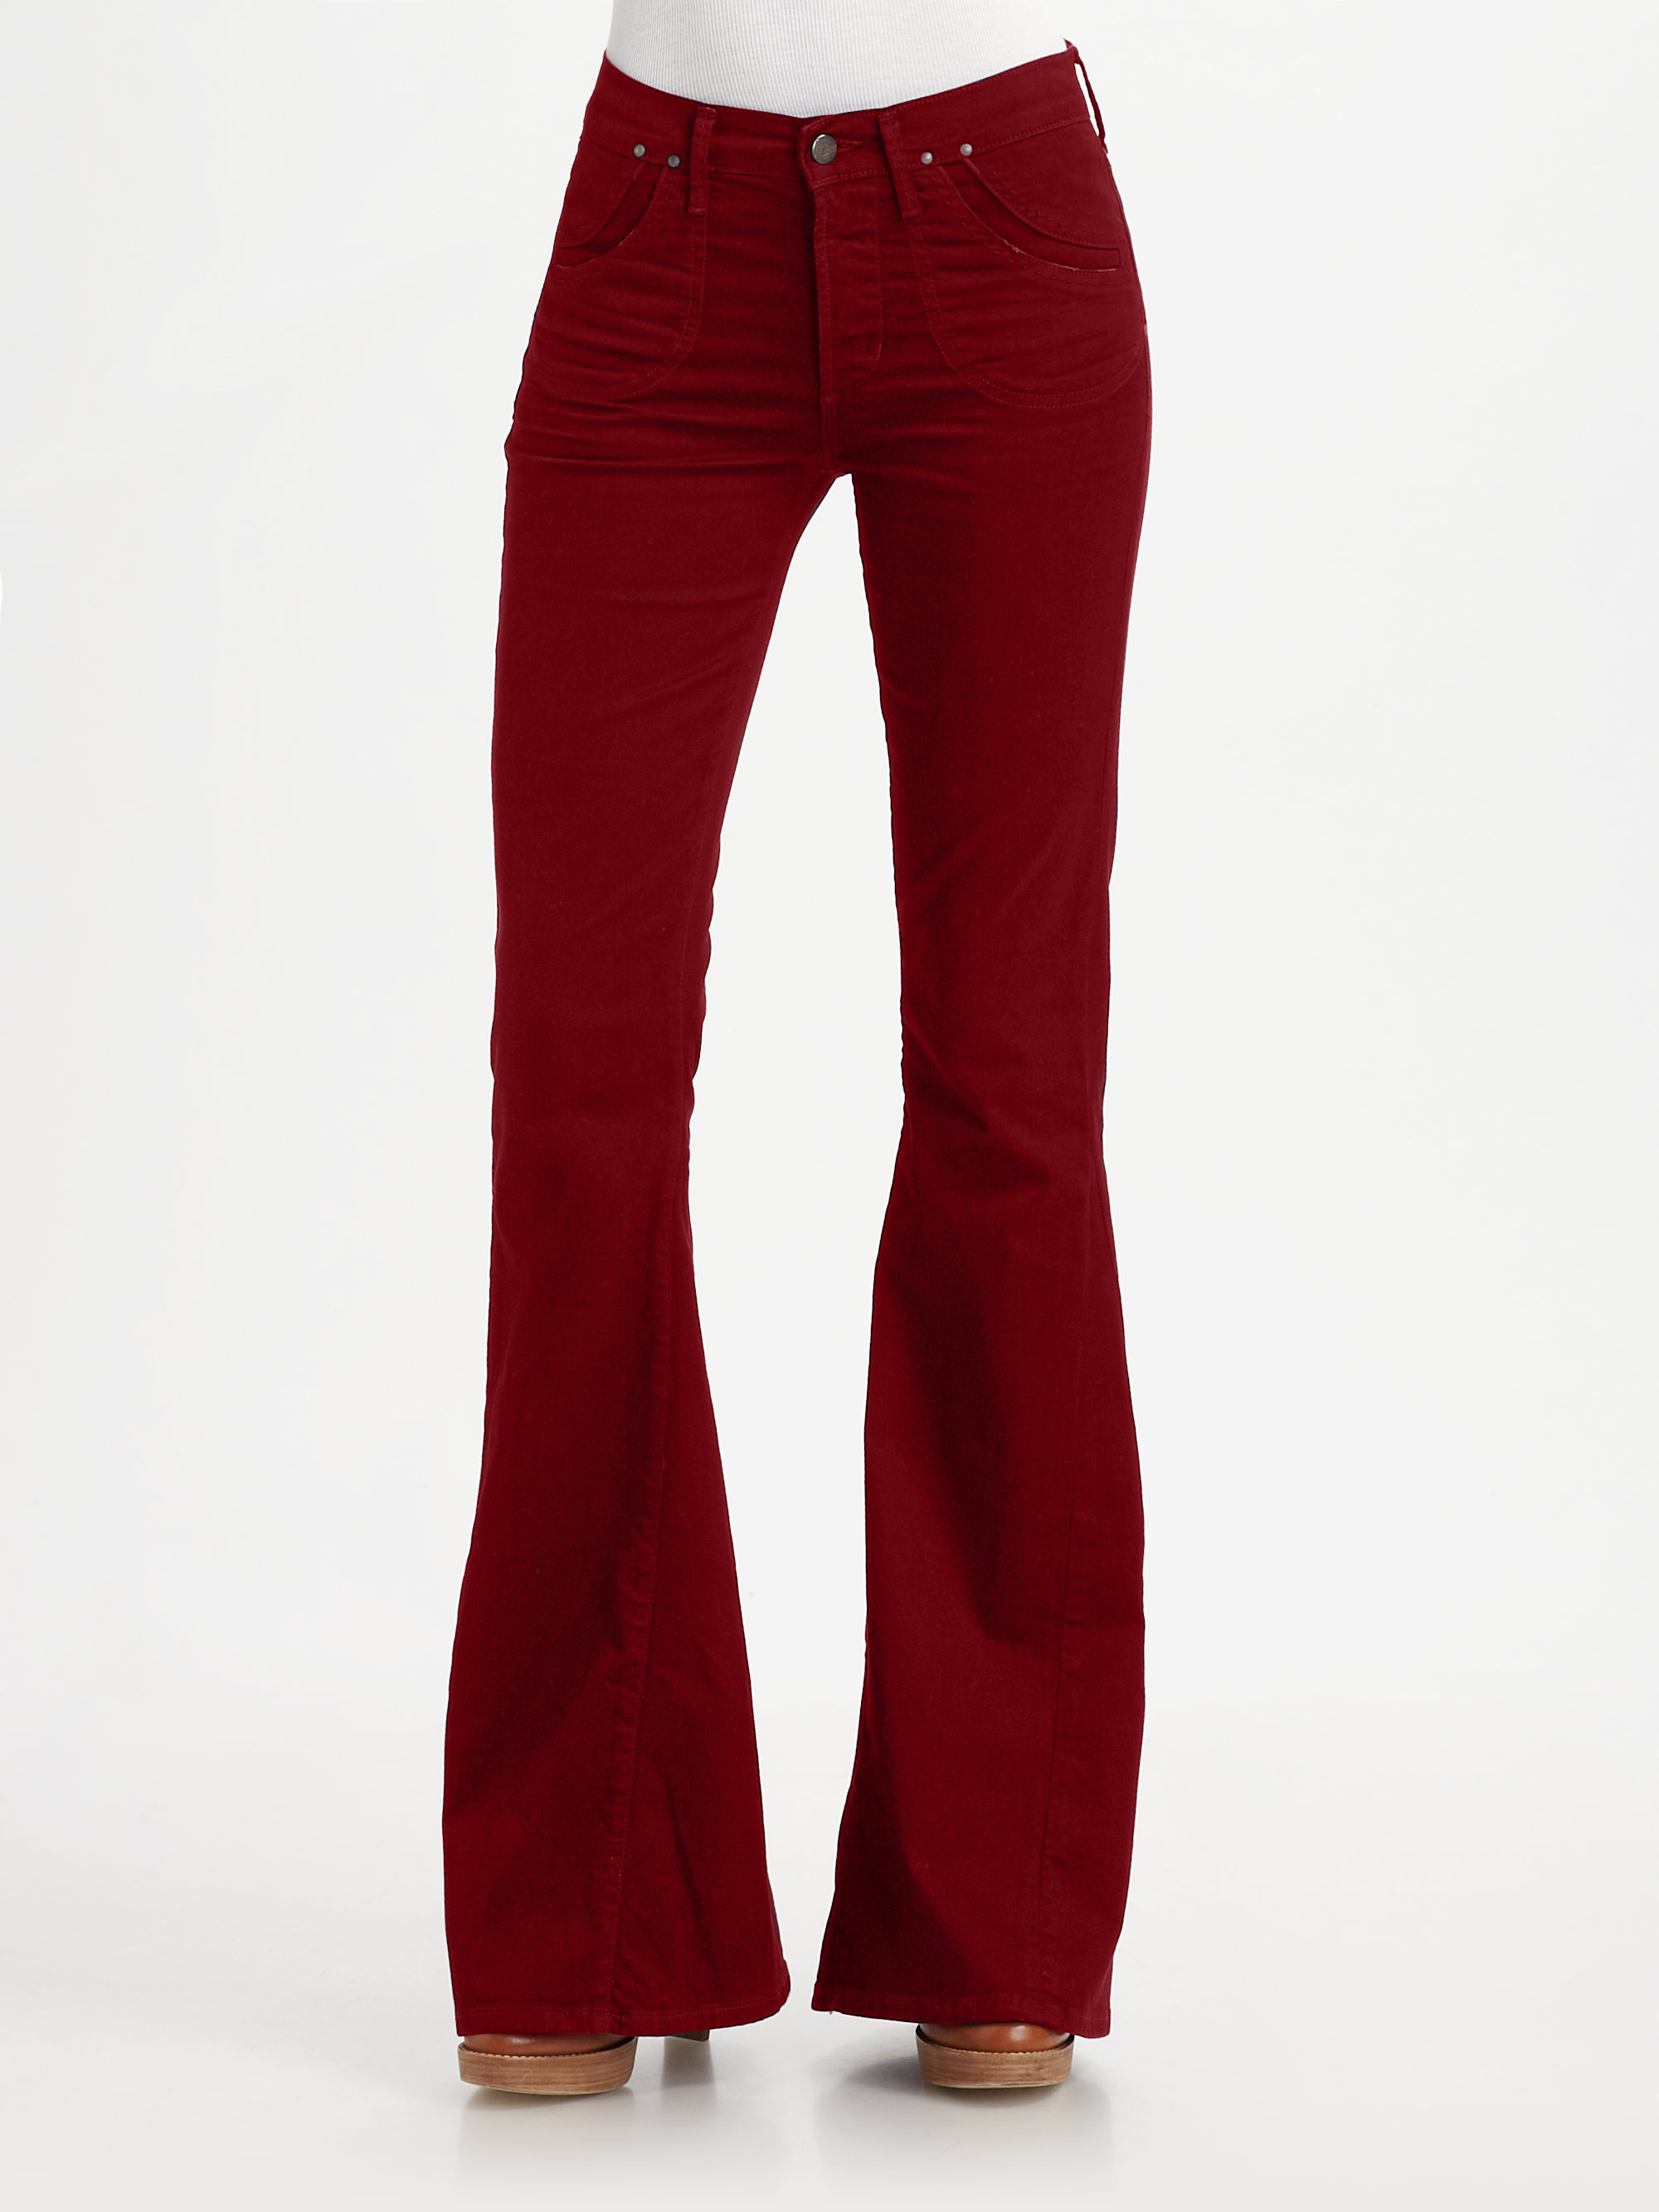 Citizens of humanity Angie Super Flare Jeans in Red | Lyst